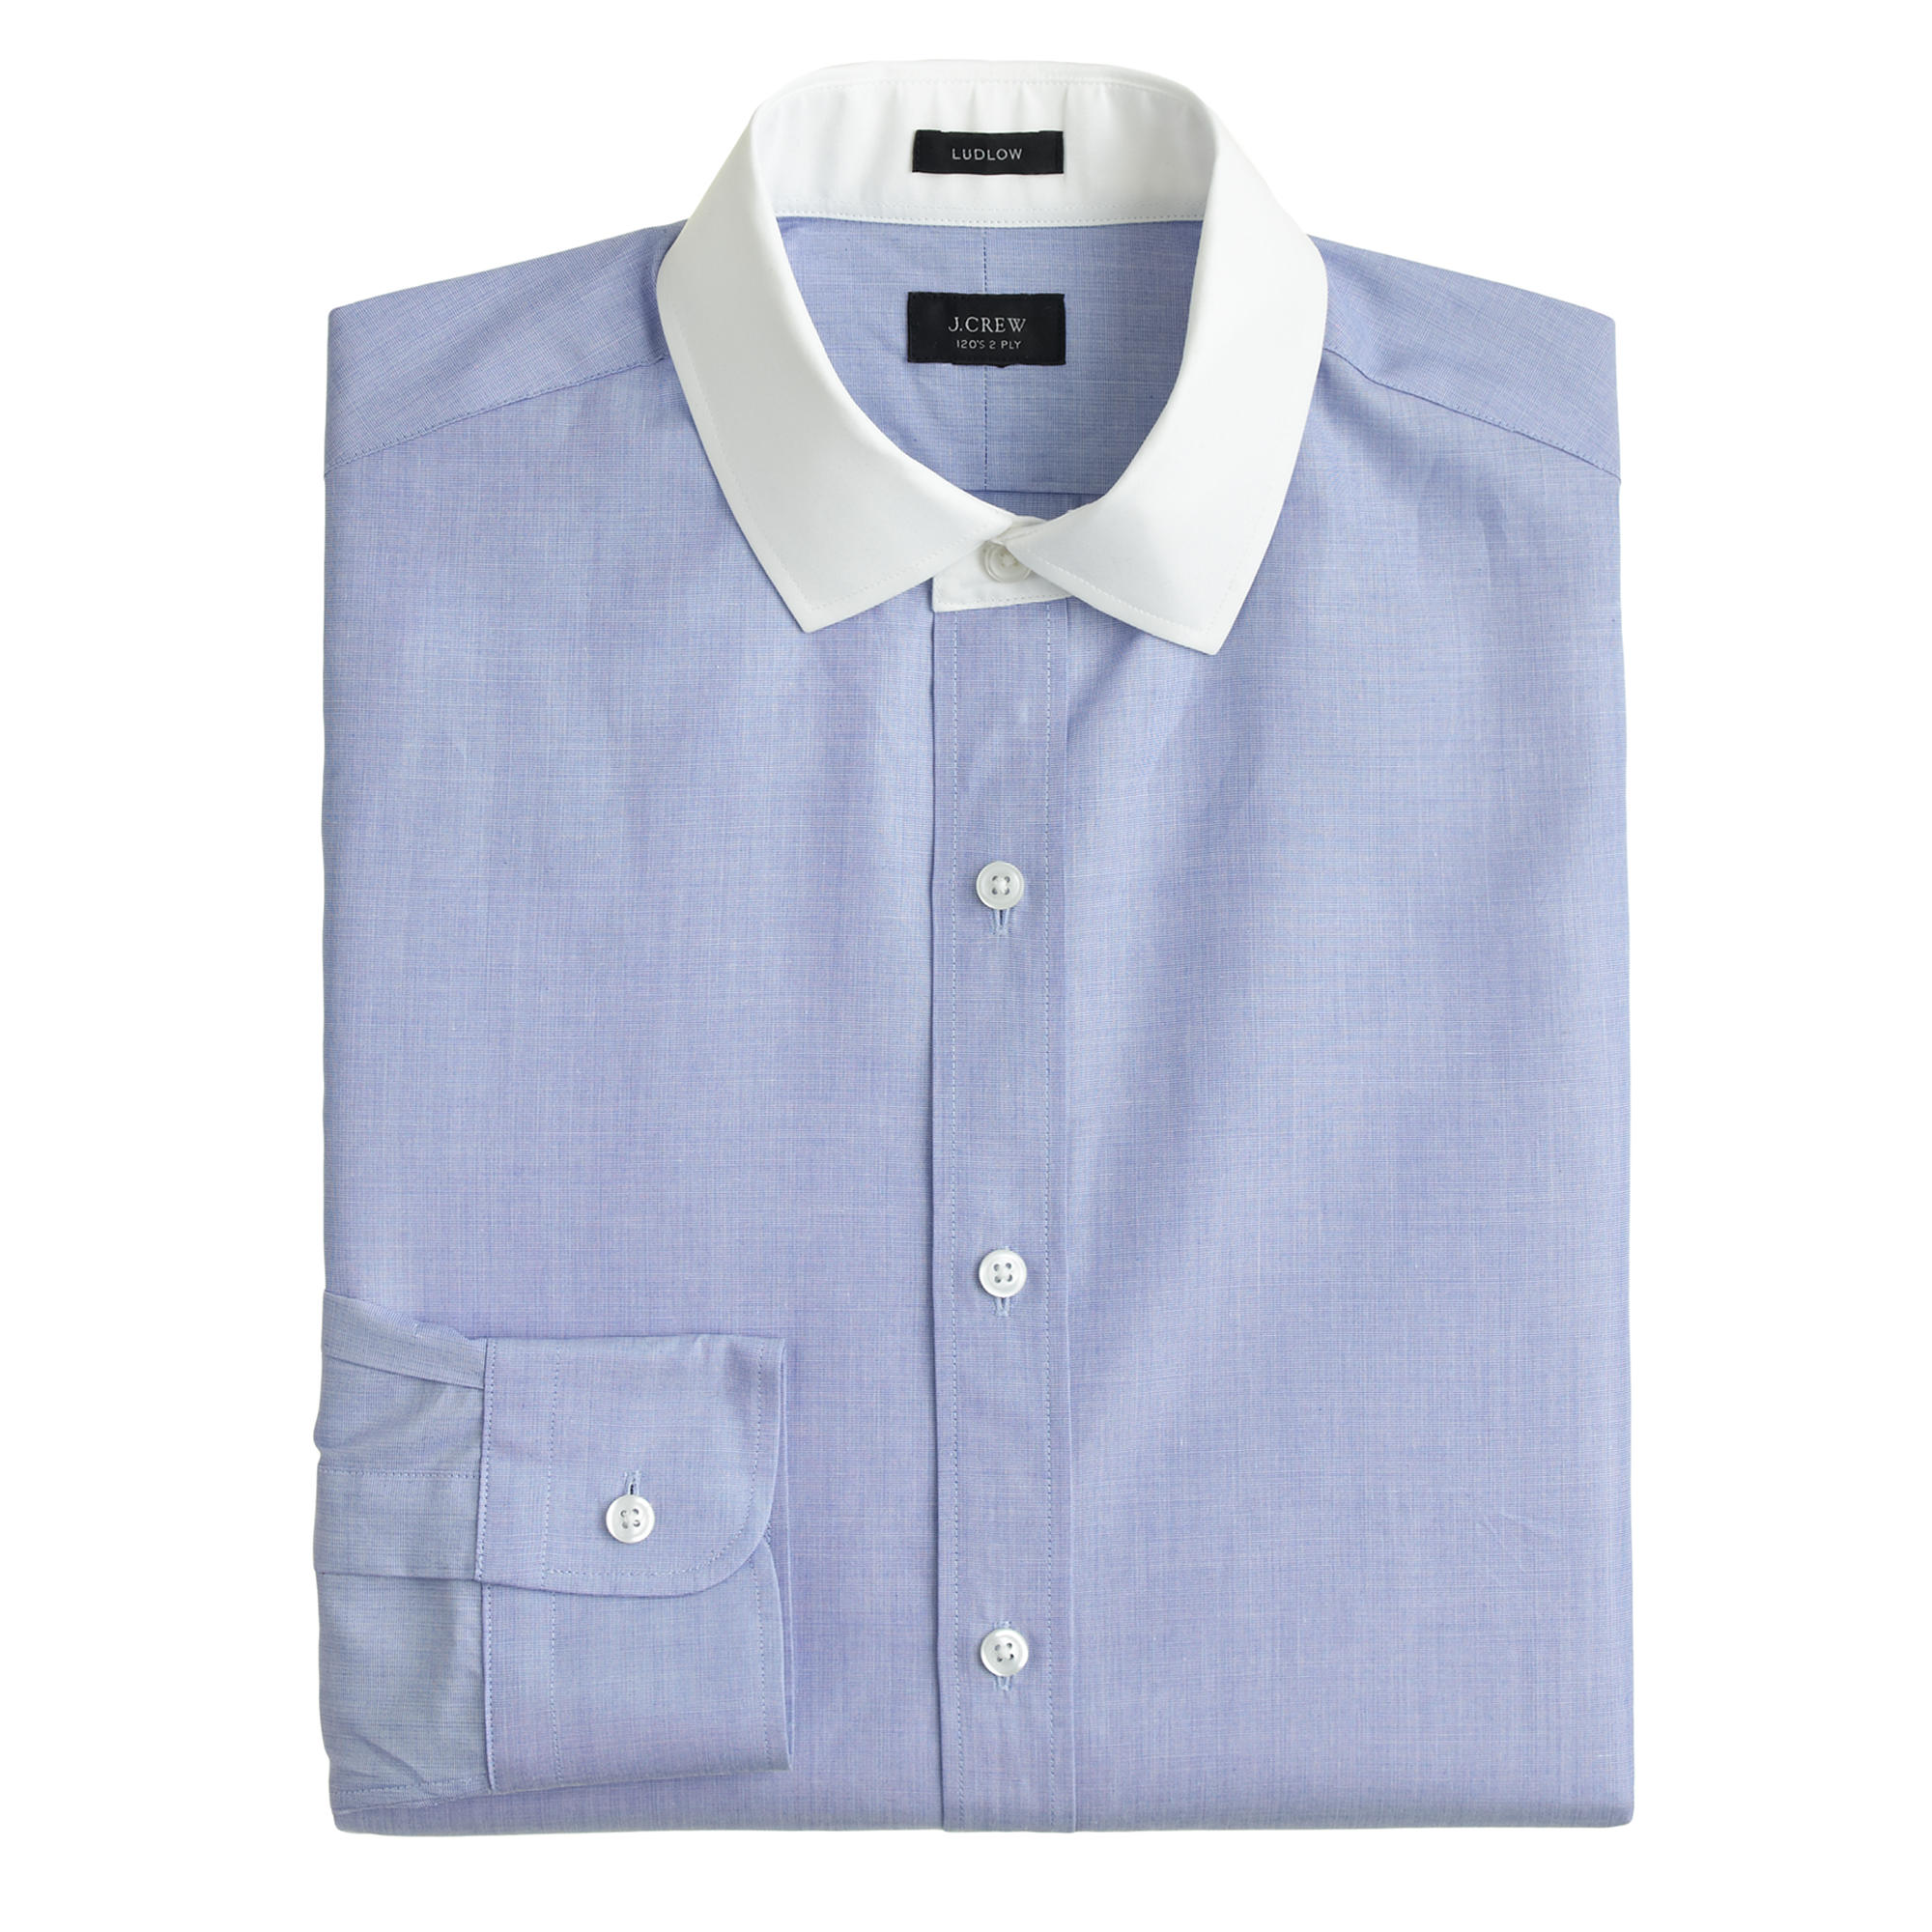 Ludlow White Collar Shirt In End On End Cotton J Crew